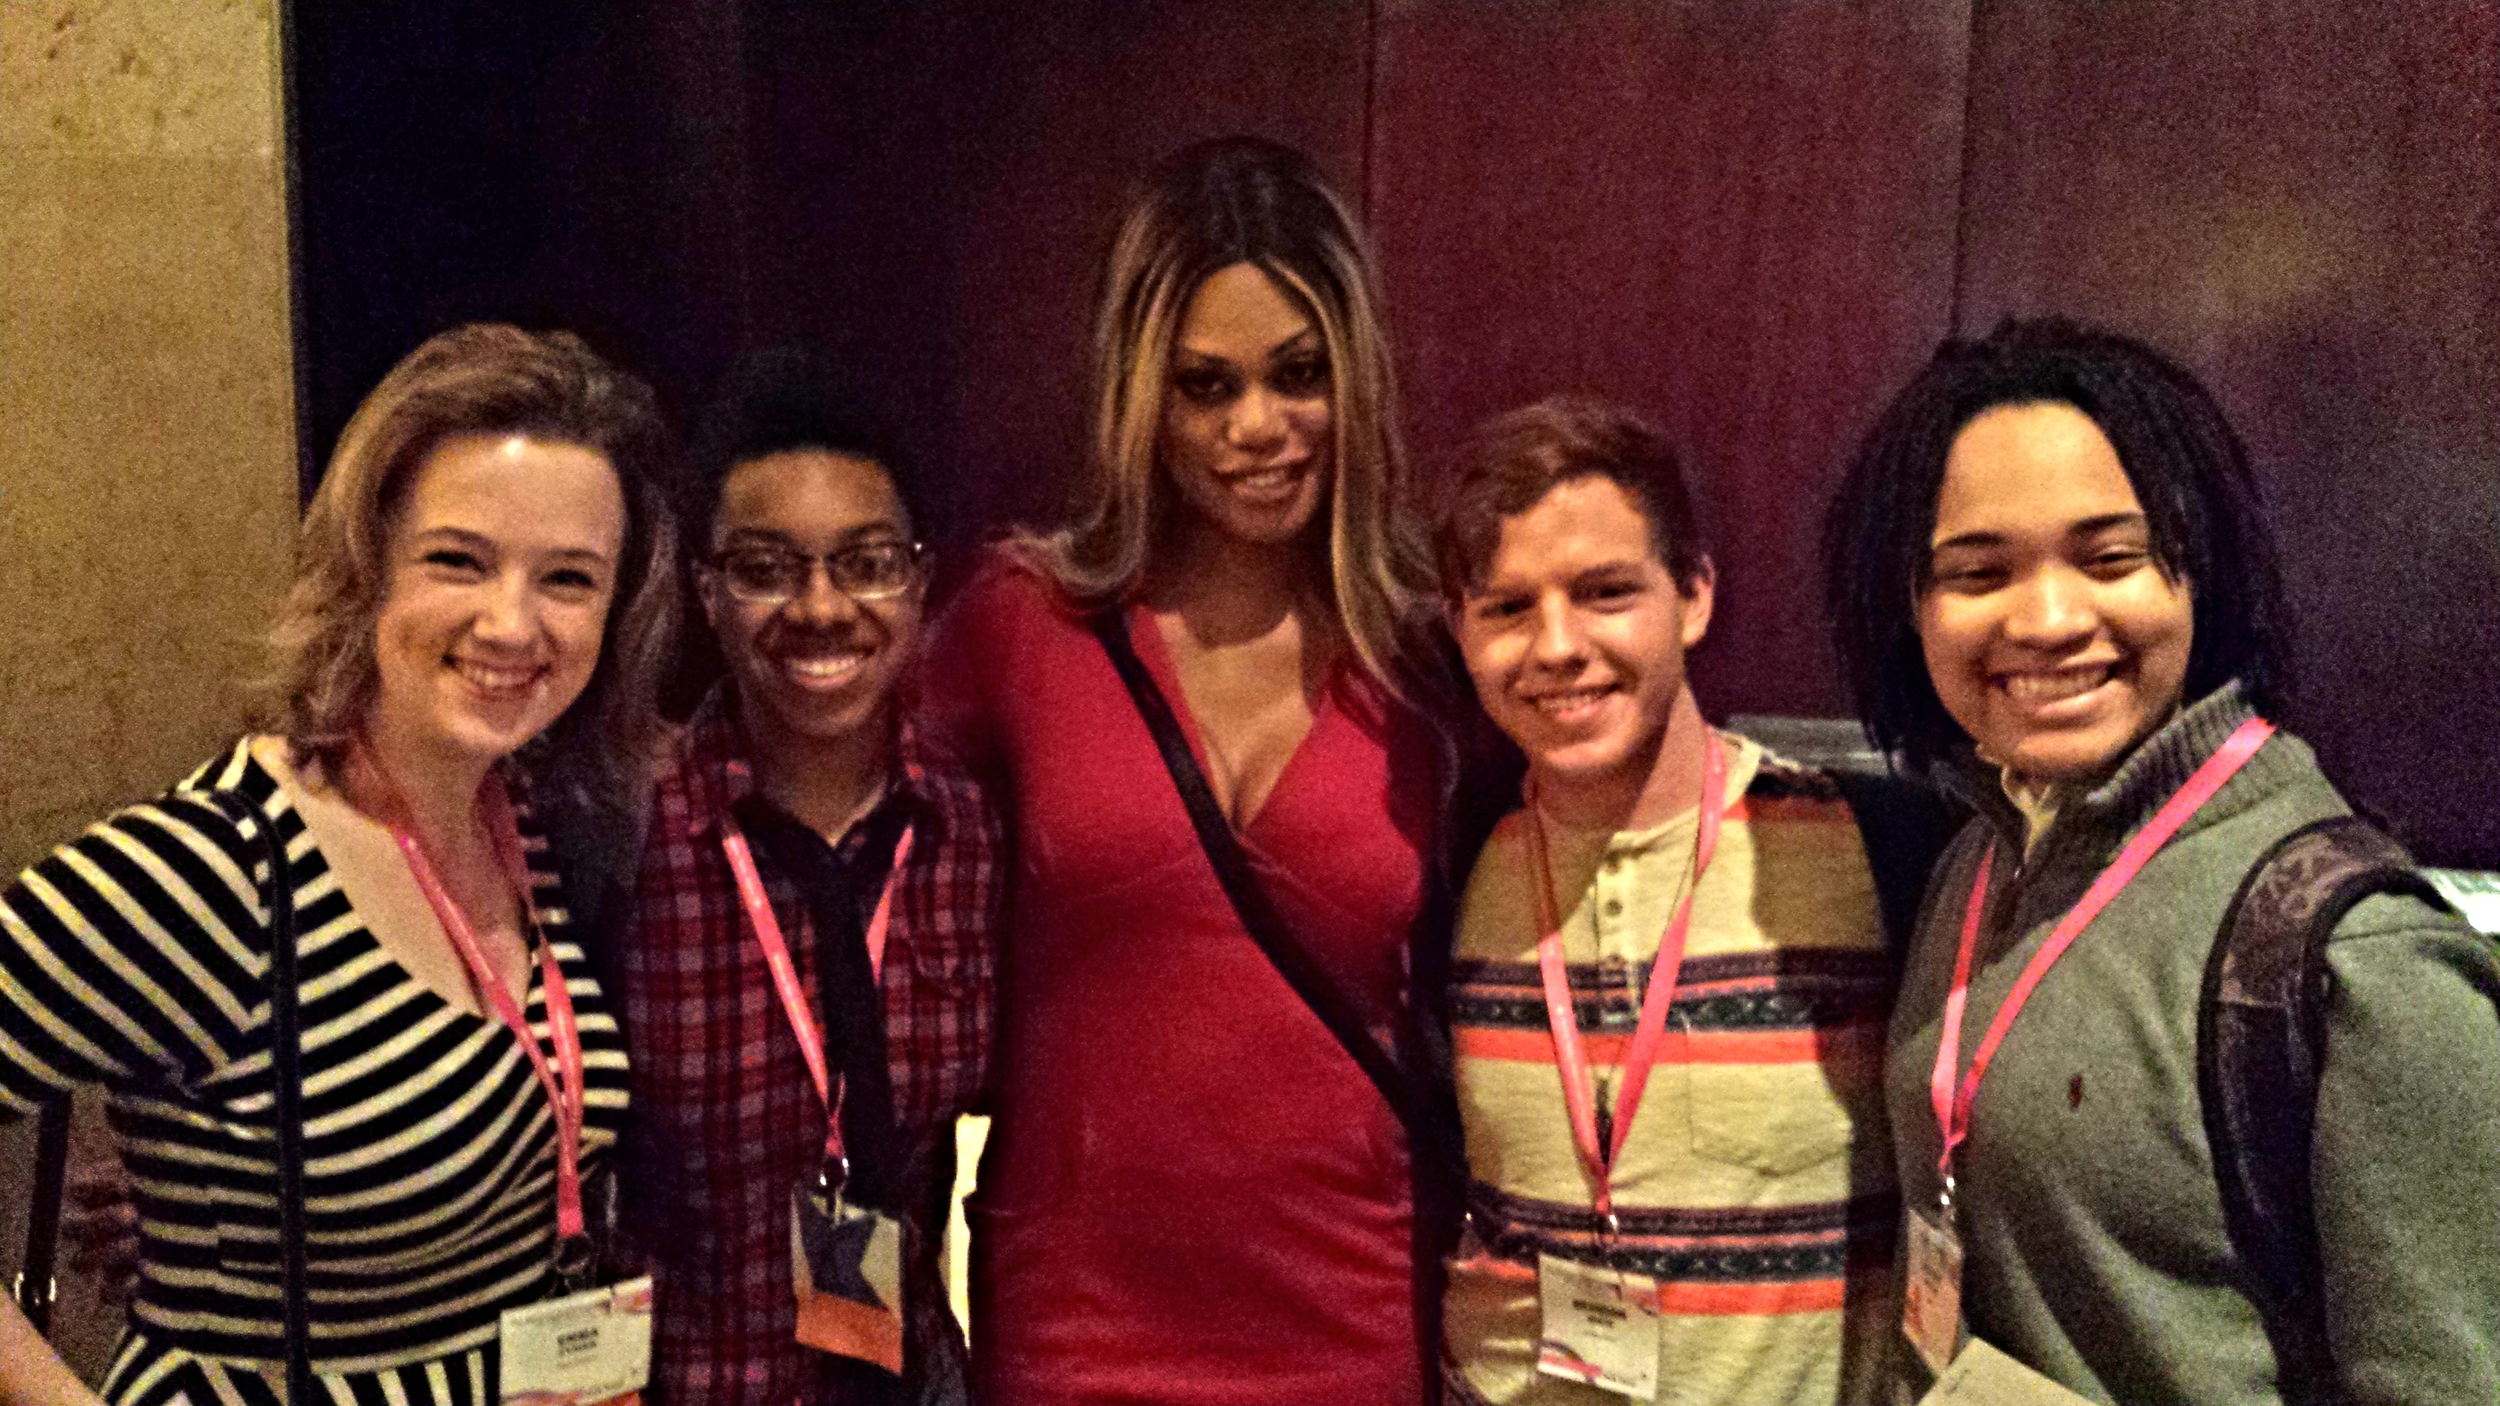 Seeing old friends. Making new friends. Being in the presence of Laverne Cox.  Education at Creating Change 2014.